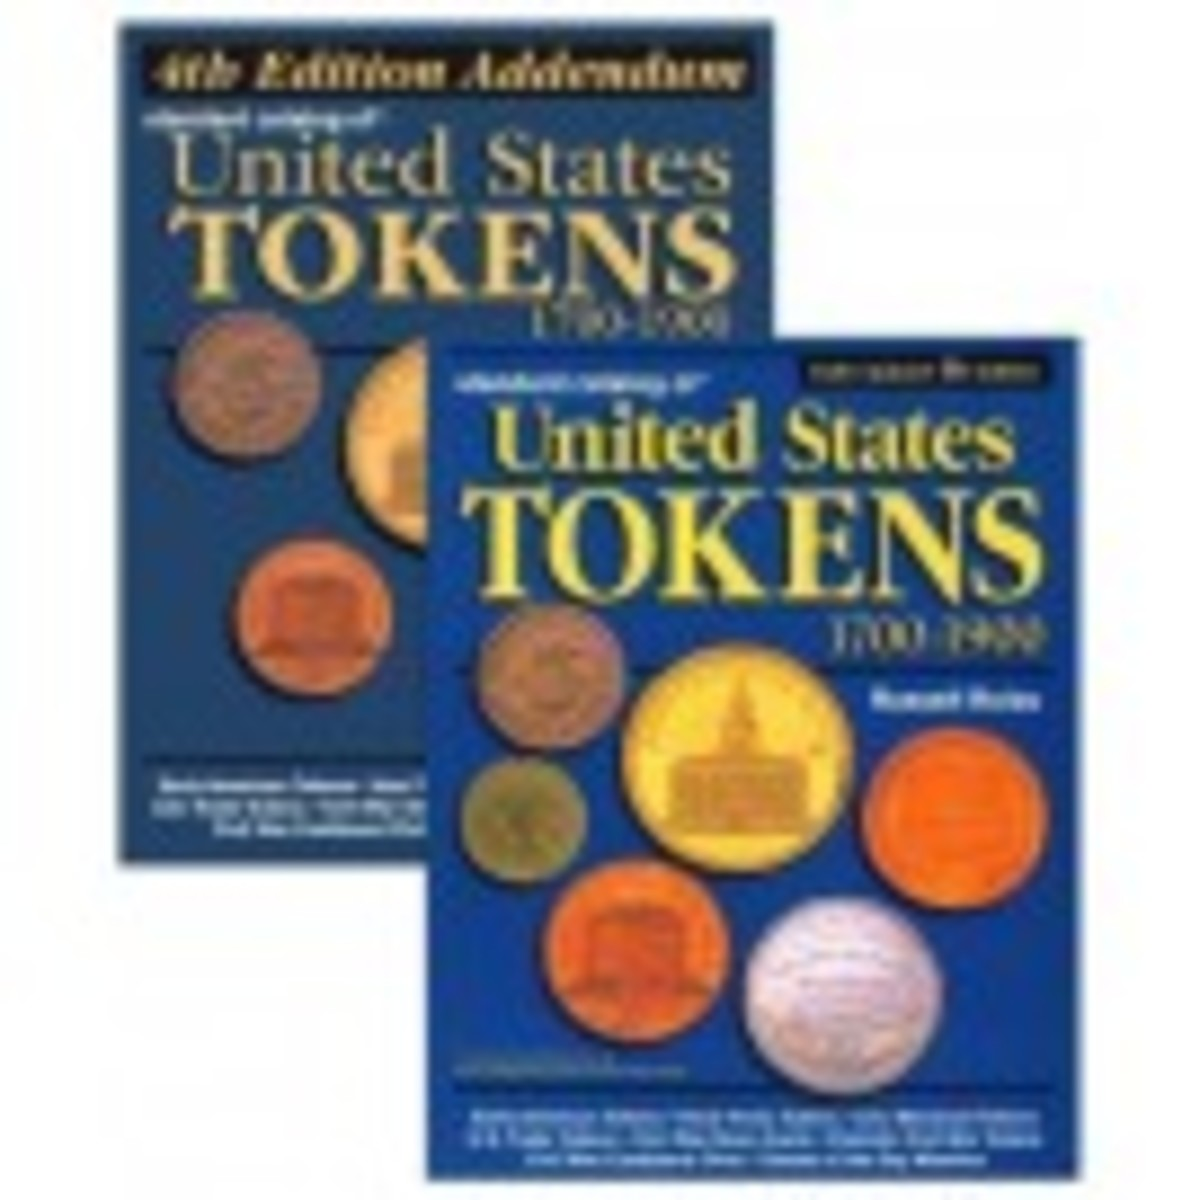 Get the most comprehensive catalog of United States tokens anywhere with this tokens download duo!